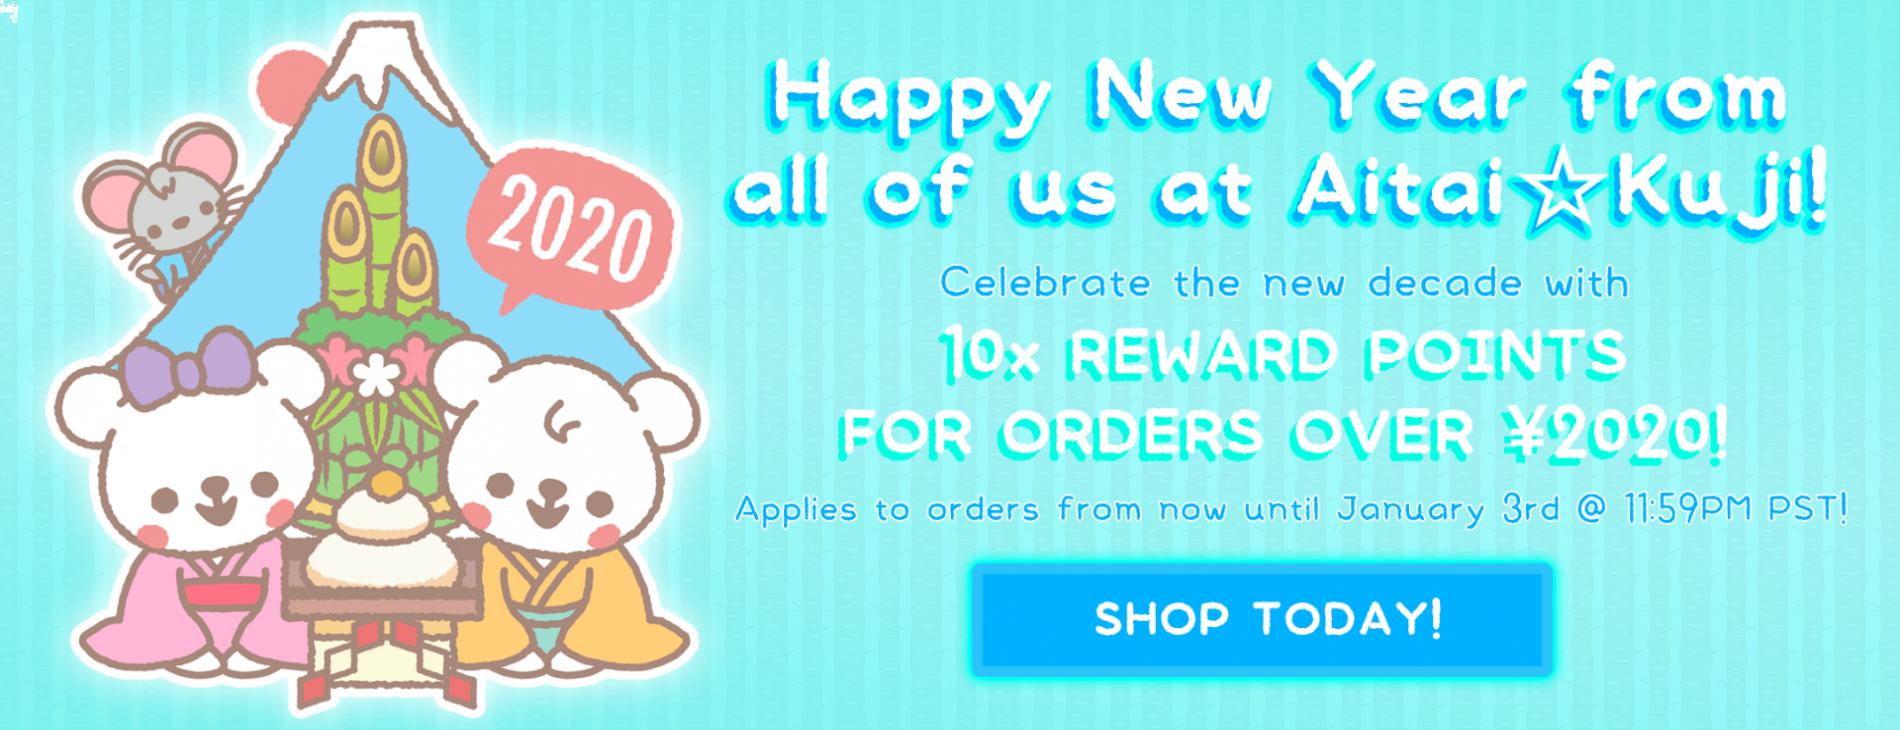 https://aitaikuji.com/blog/aitaikuji-website-renewal